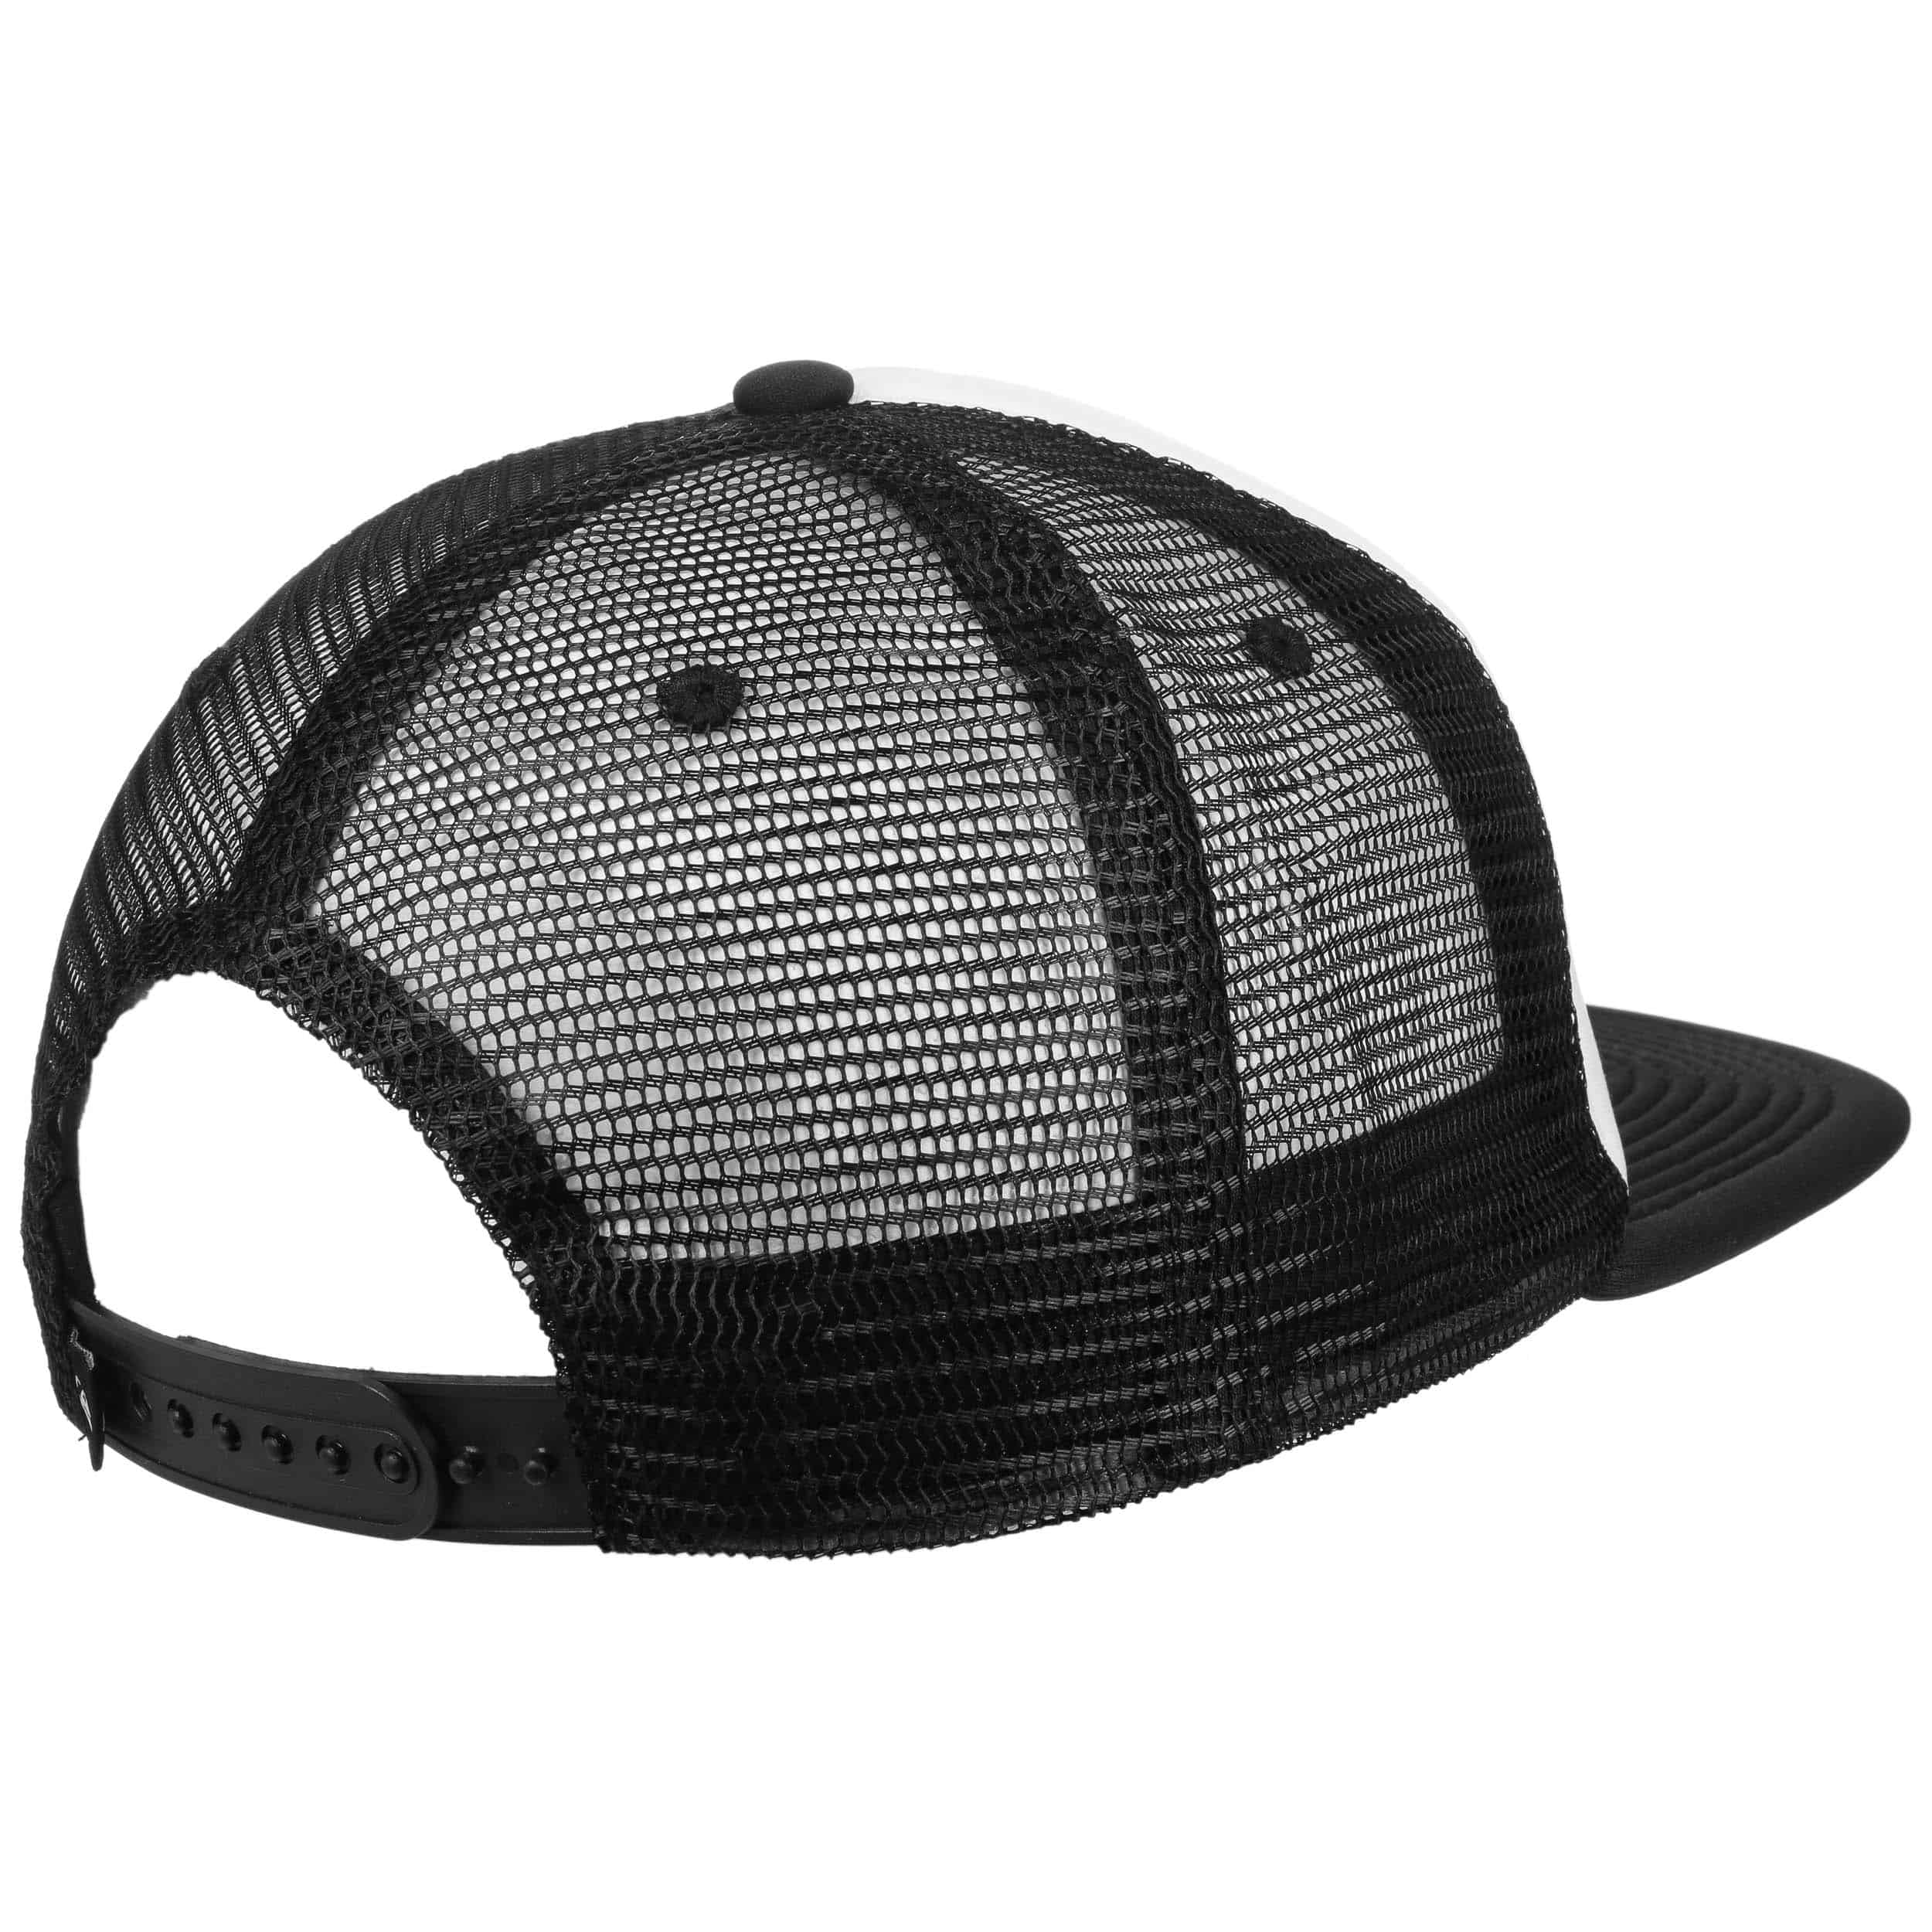 bad13f24d3a2f ... Snap Addict Trucker Cap by Quiksilver - white 3 ...